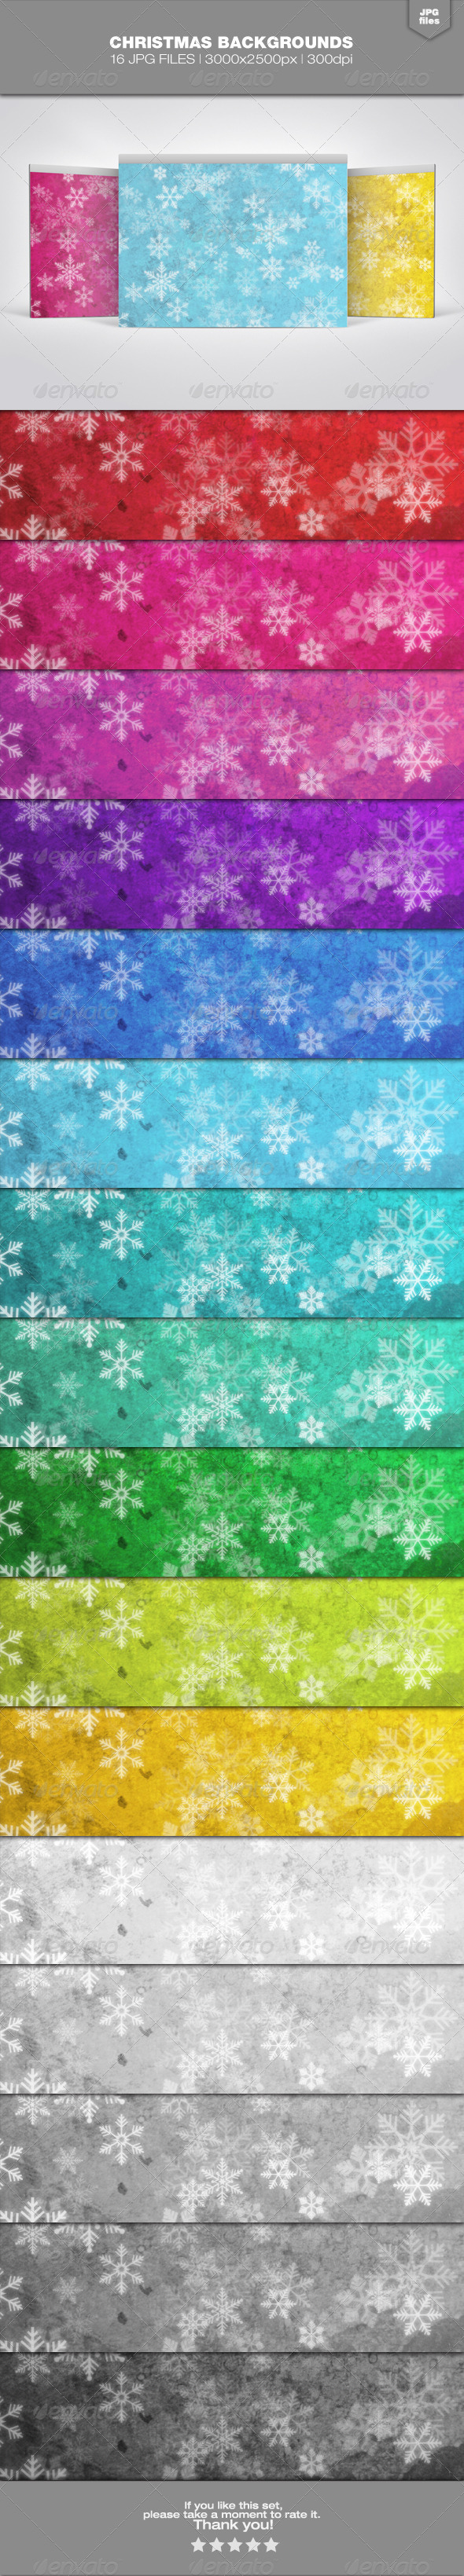 GraphicRiver Christmas Backgrounds Set 1 6337850